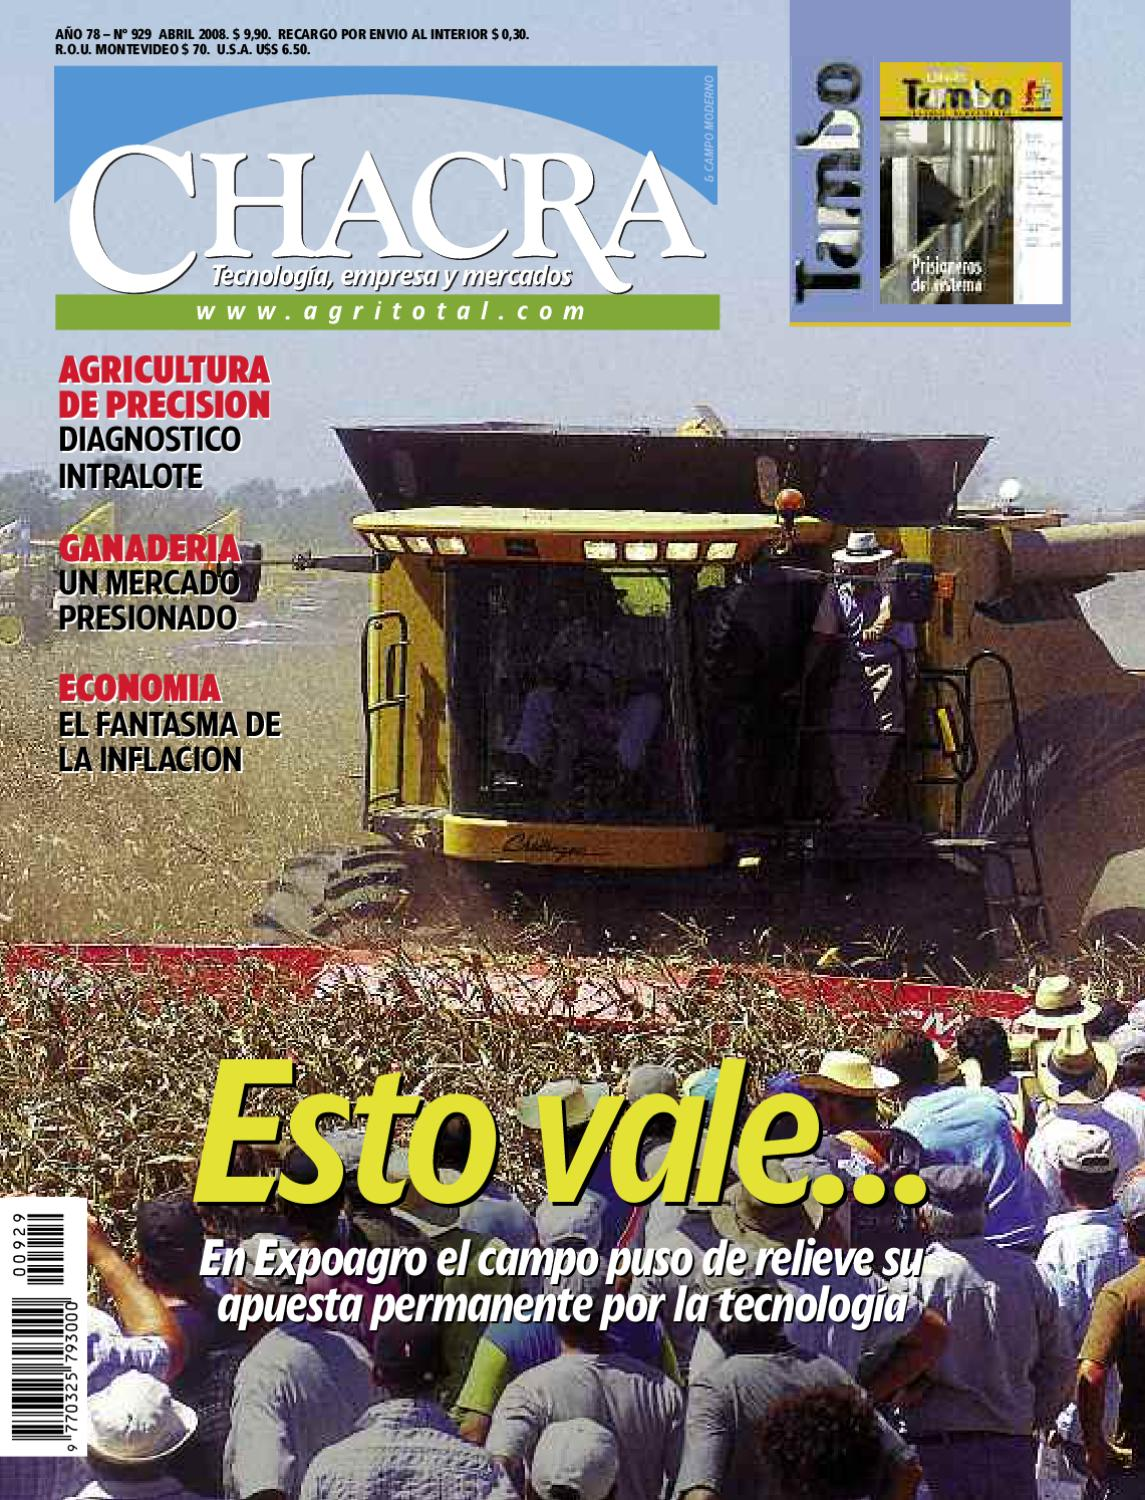 Revista Chacra Nº 929 - Abril 2008 by Revista Chacra - issuu bddc6d38882